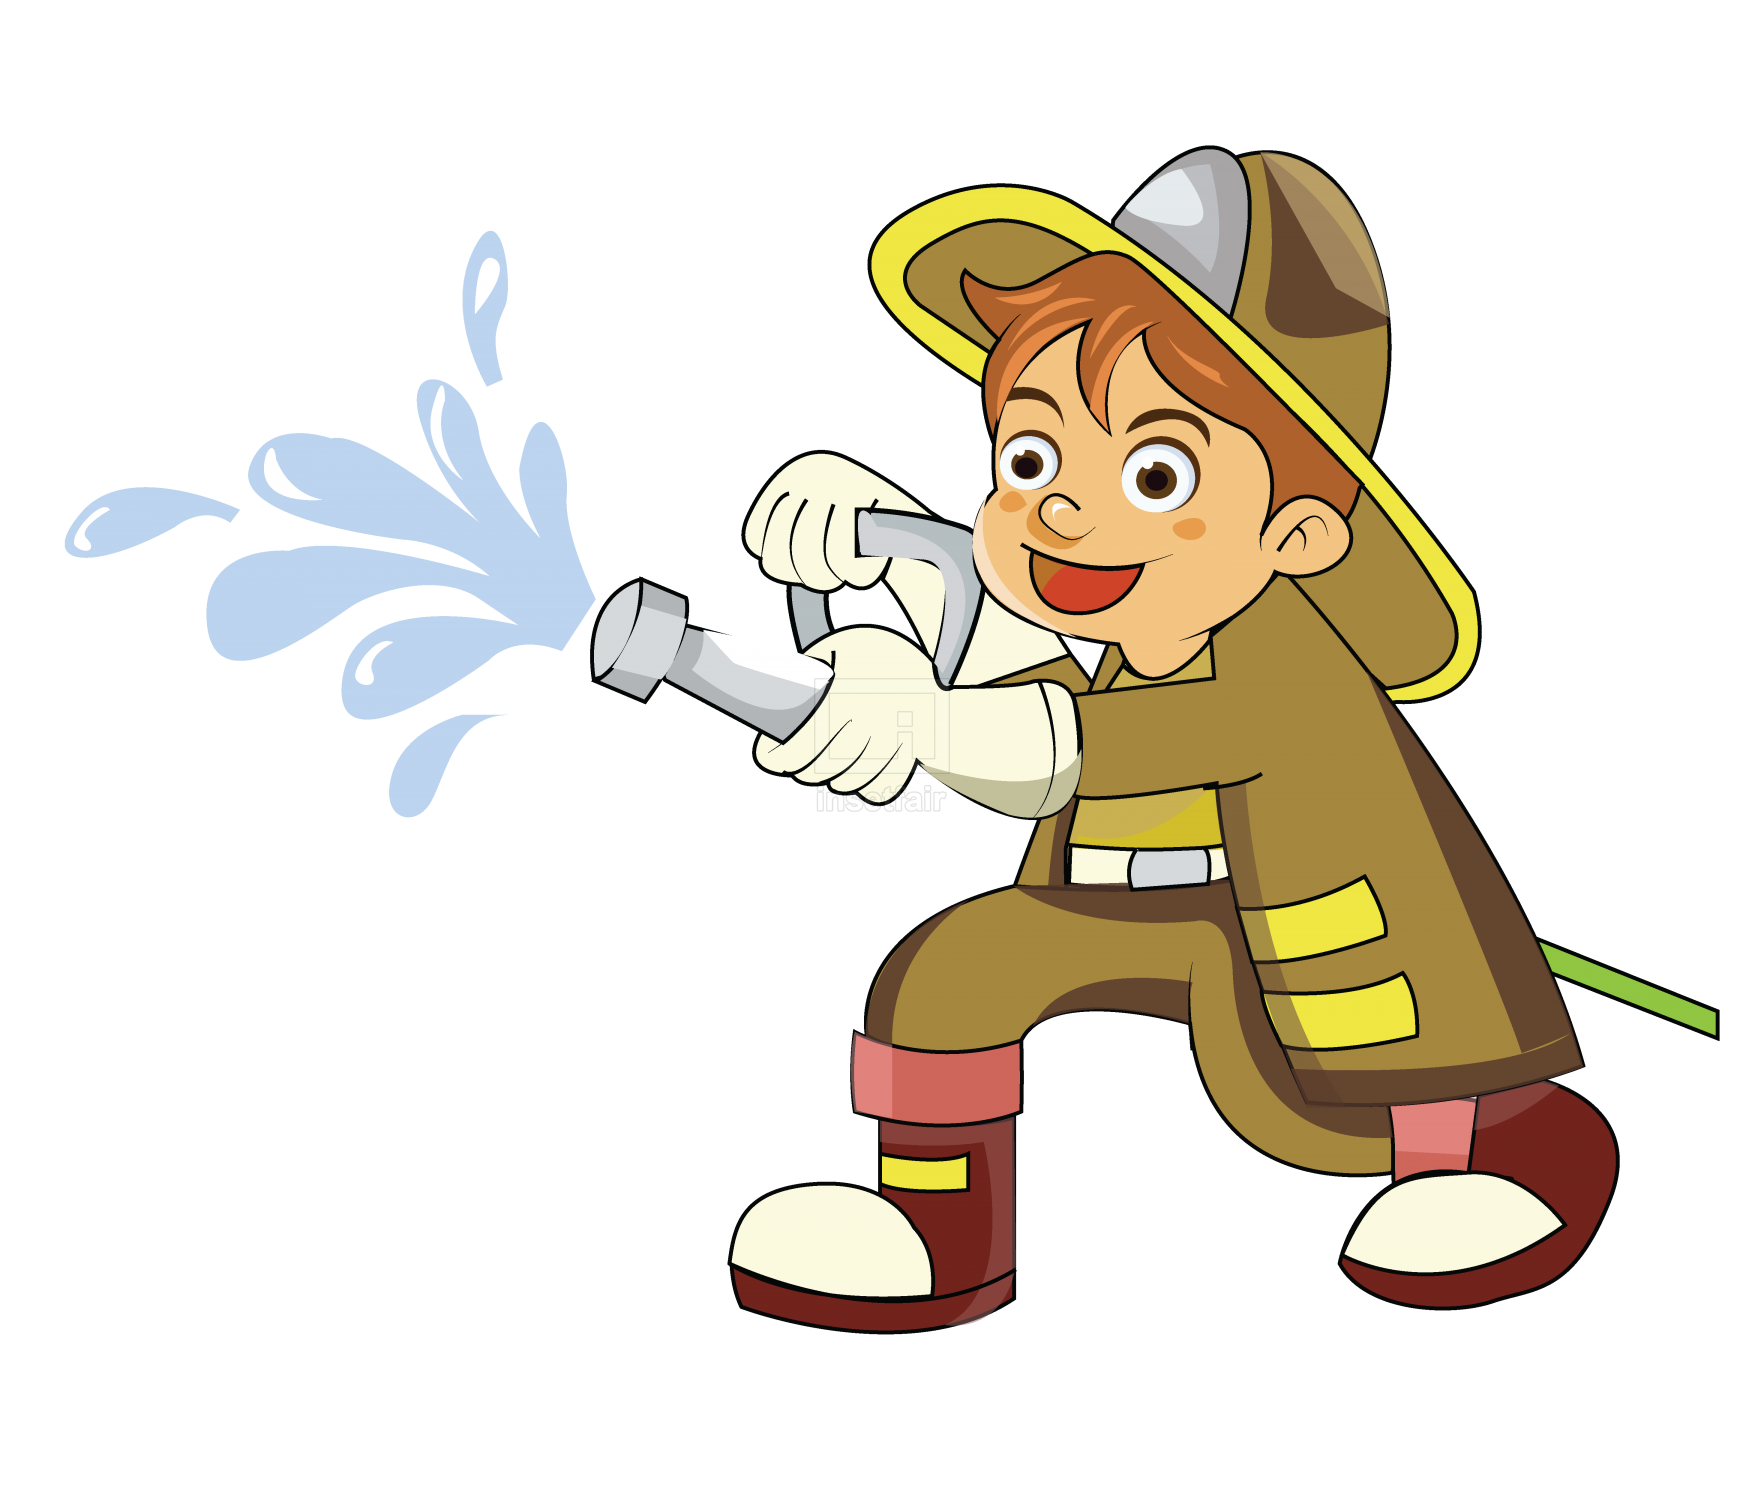 Fireman on duty vector illustration free png images at Insetfair